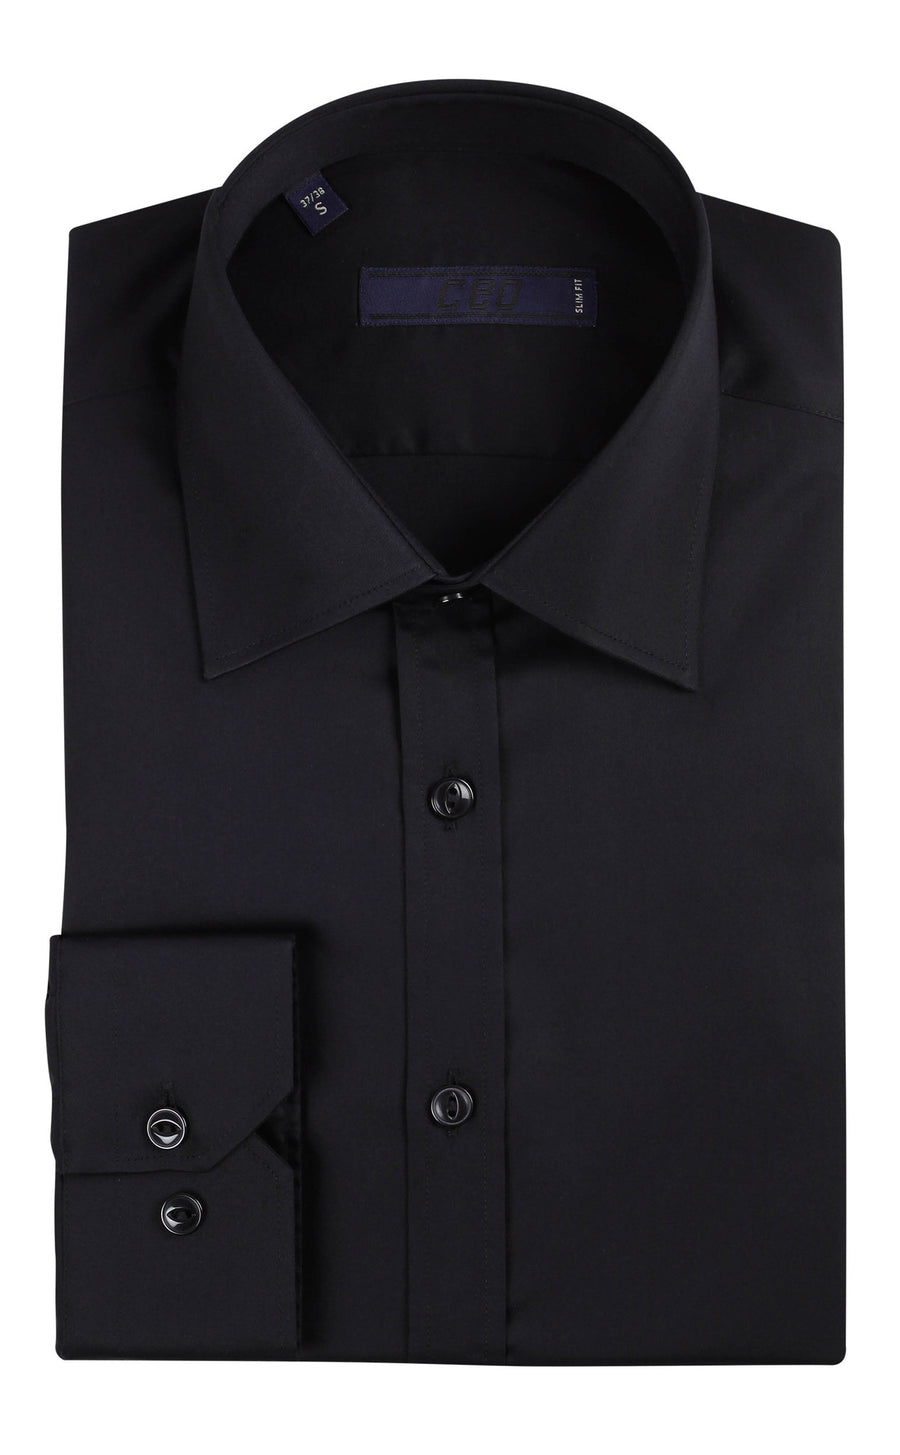 CEO Slim Fit Shirt in Black - Ron Bennett Menswear